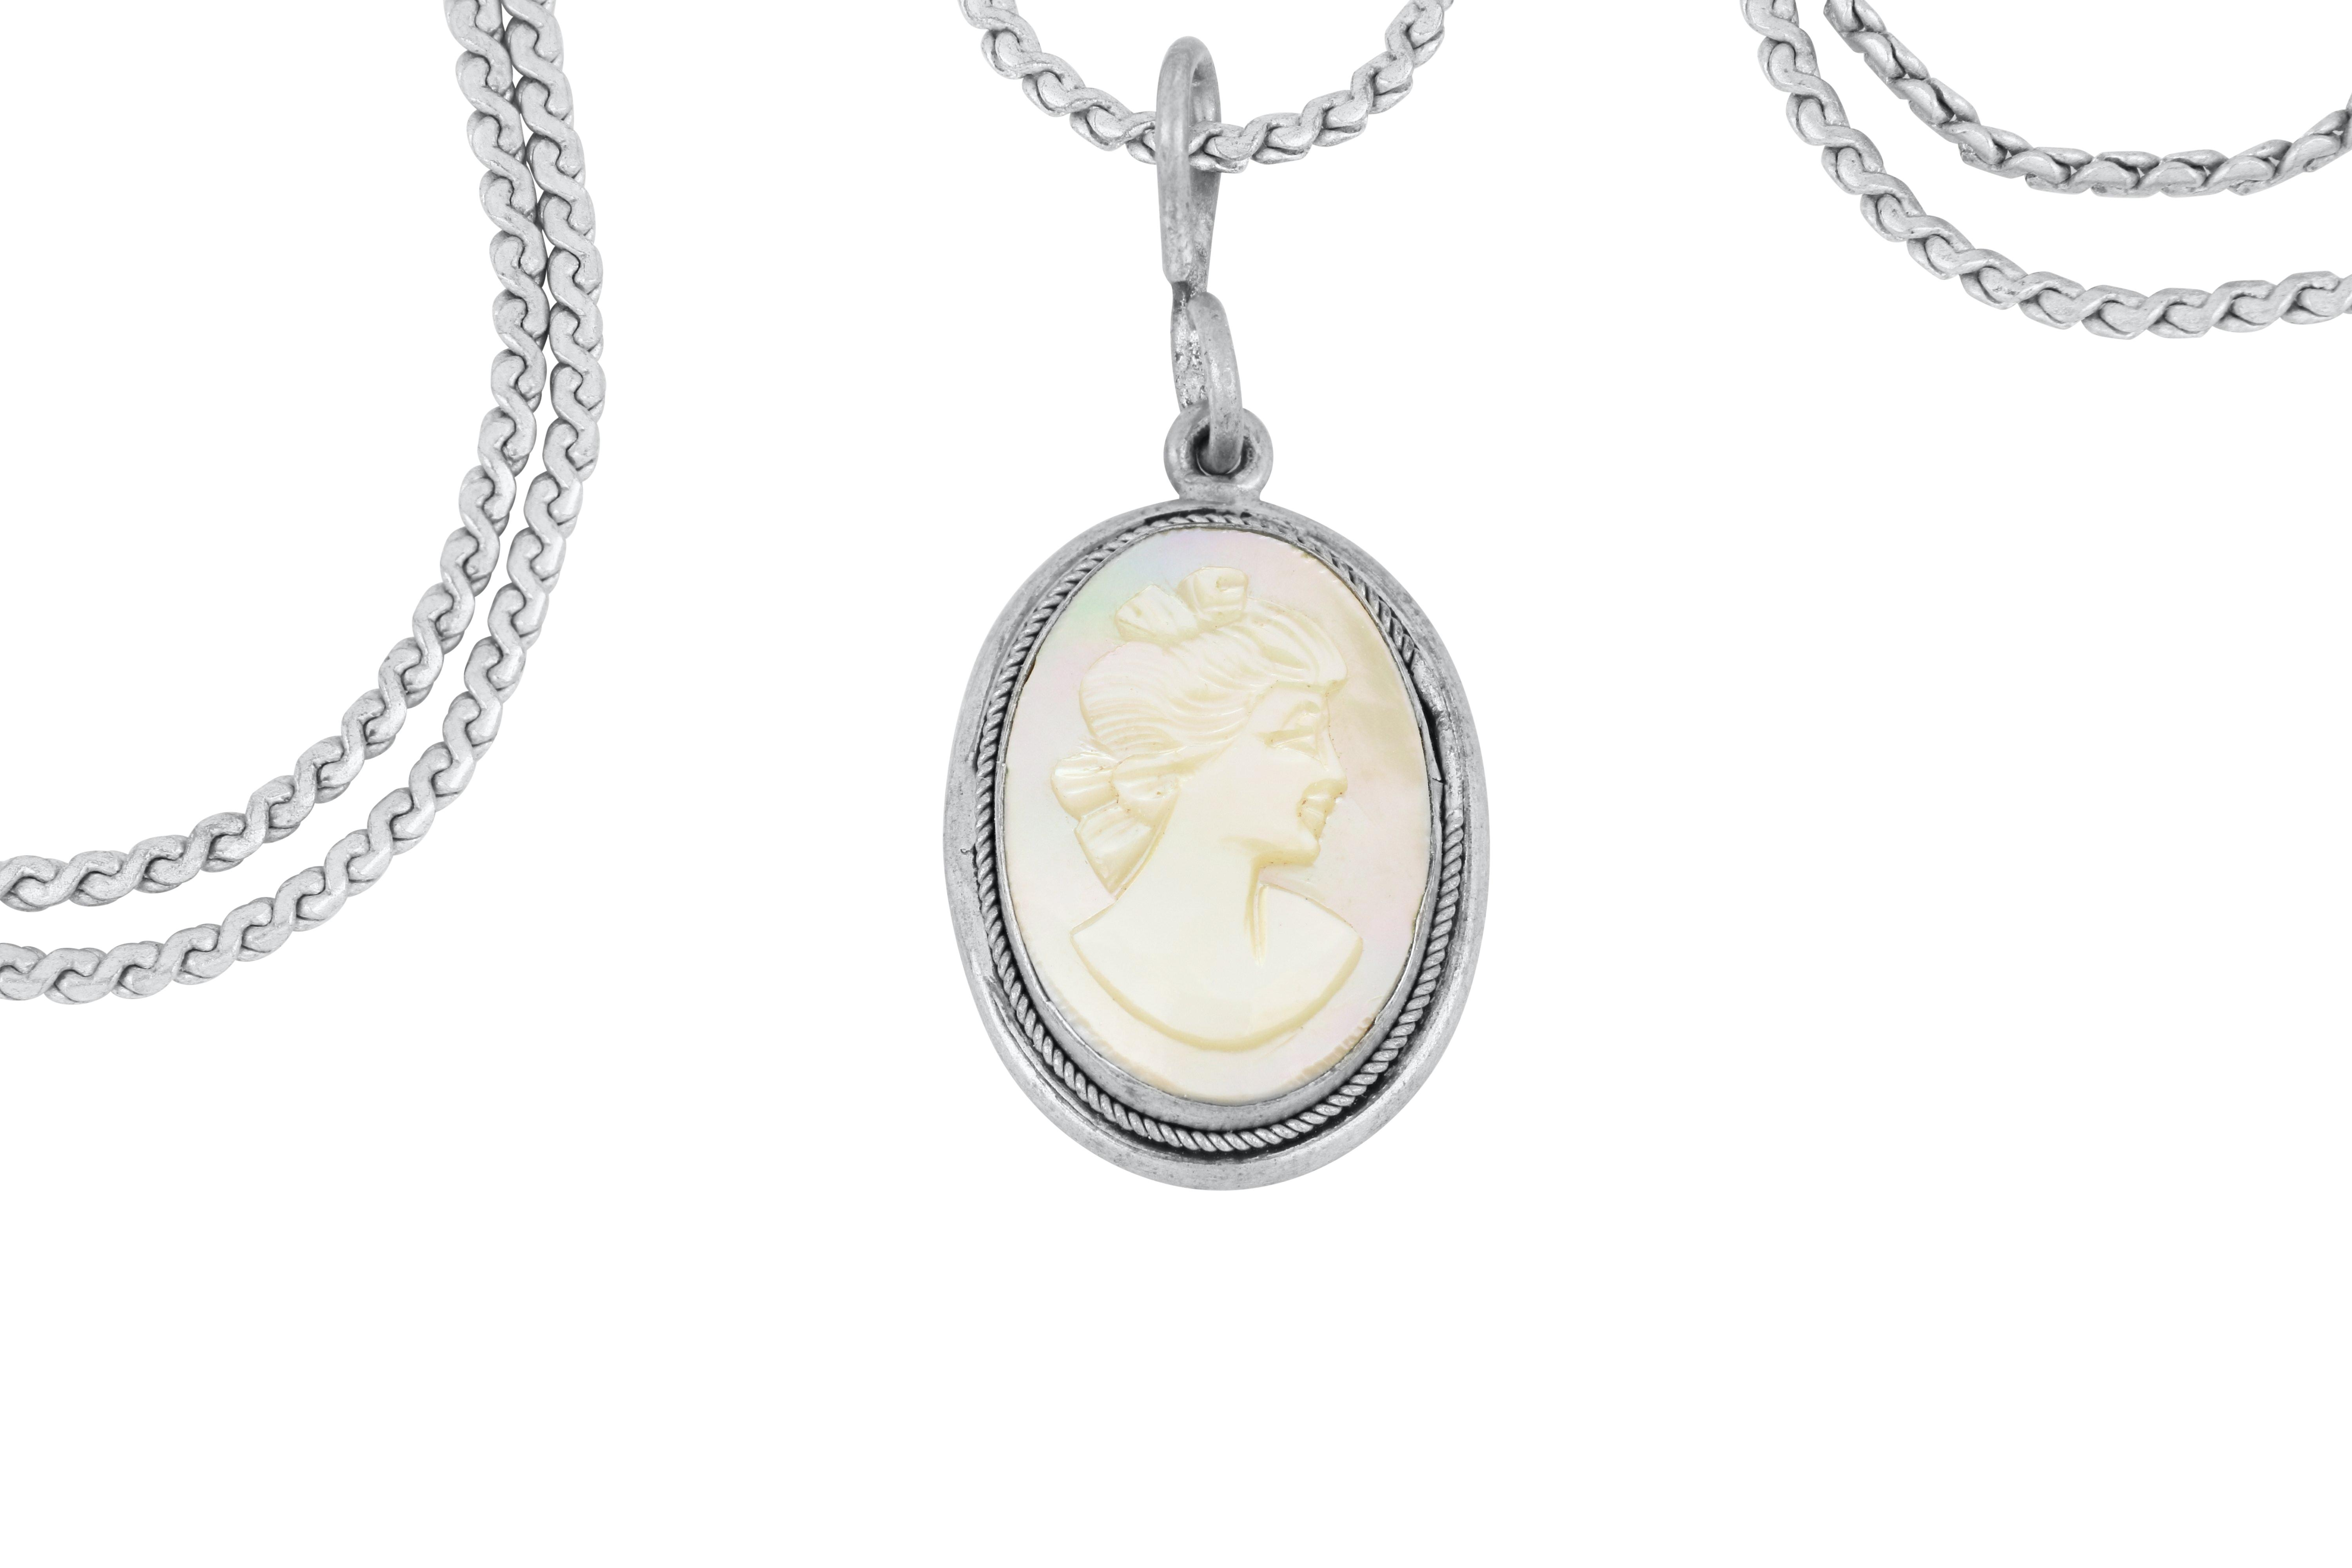 Sterling silver mother of pearl pendant on neck chain